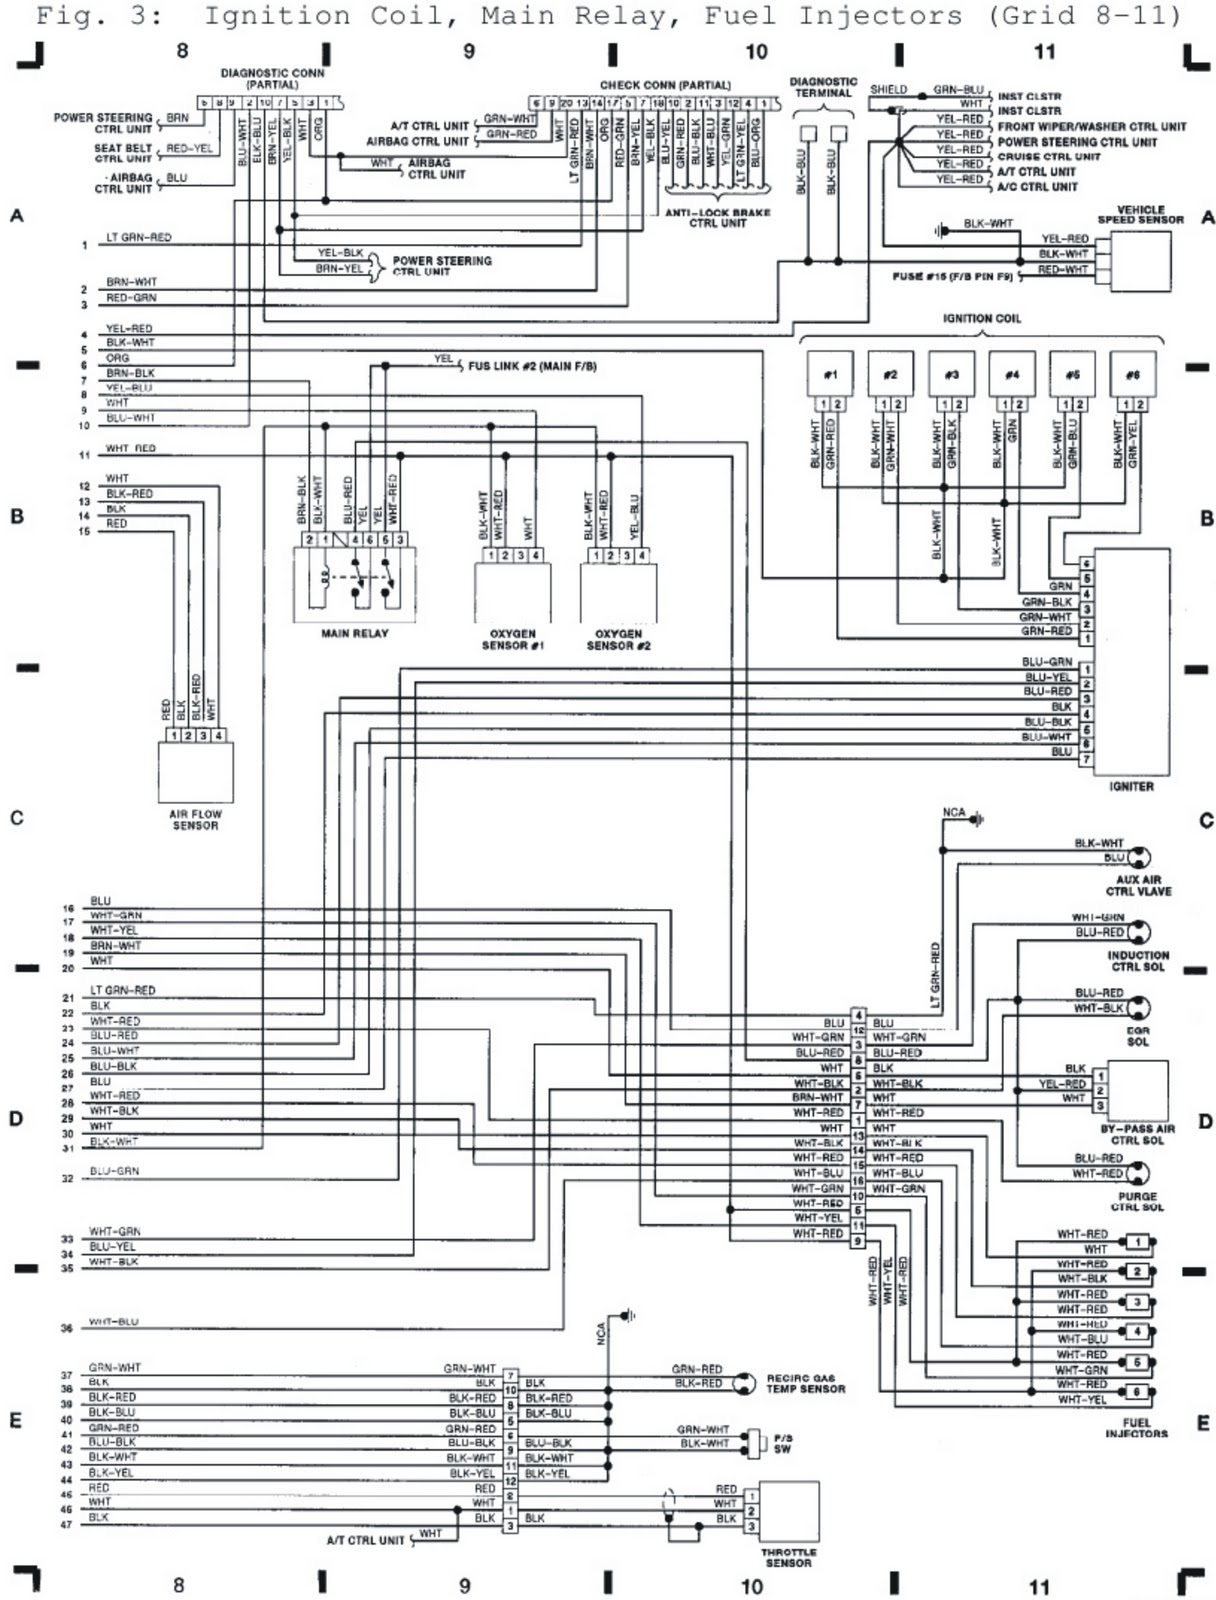 medium resolution of subaru wiring diagrams get free image about wiring diagram 2006 subaru outback wiring schematic subaru forester d7 wiring schematic